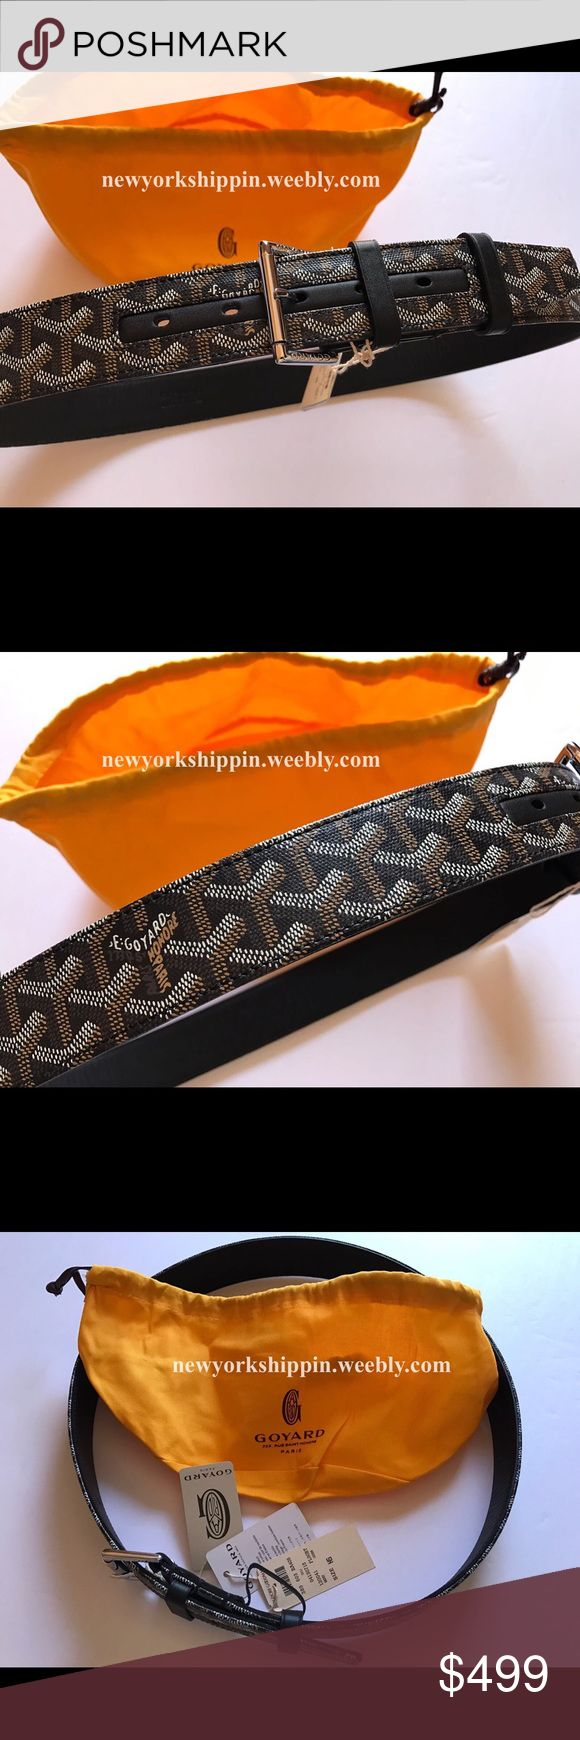 Black Men's leather belt Men's black leather Monogram gyd belt. Comes with dust bag. Ships out next day after purchase. Delivery 1-3 days. Goyard Accessories Belts